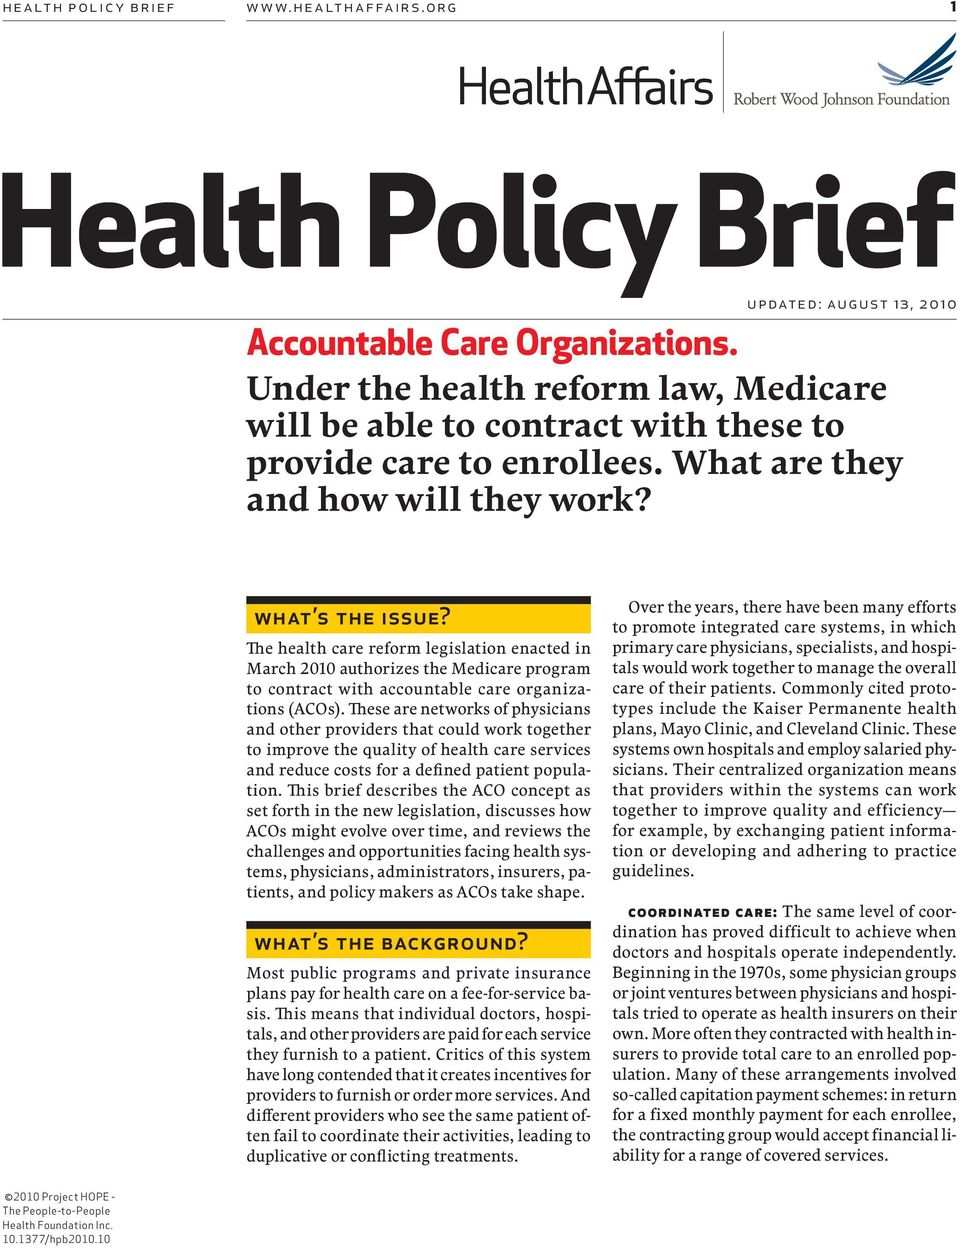 The health care reform legislation enacted in March 2010 authorizes the Medicare program to contract with (ACOs).